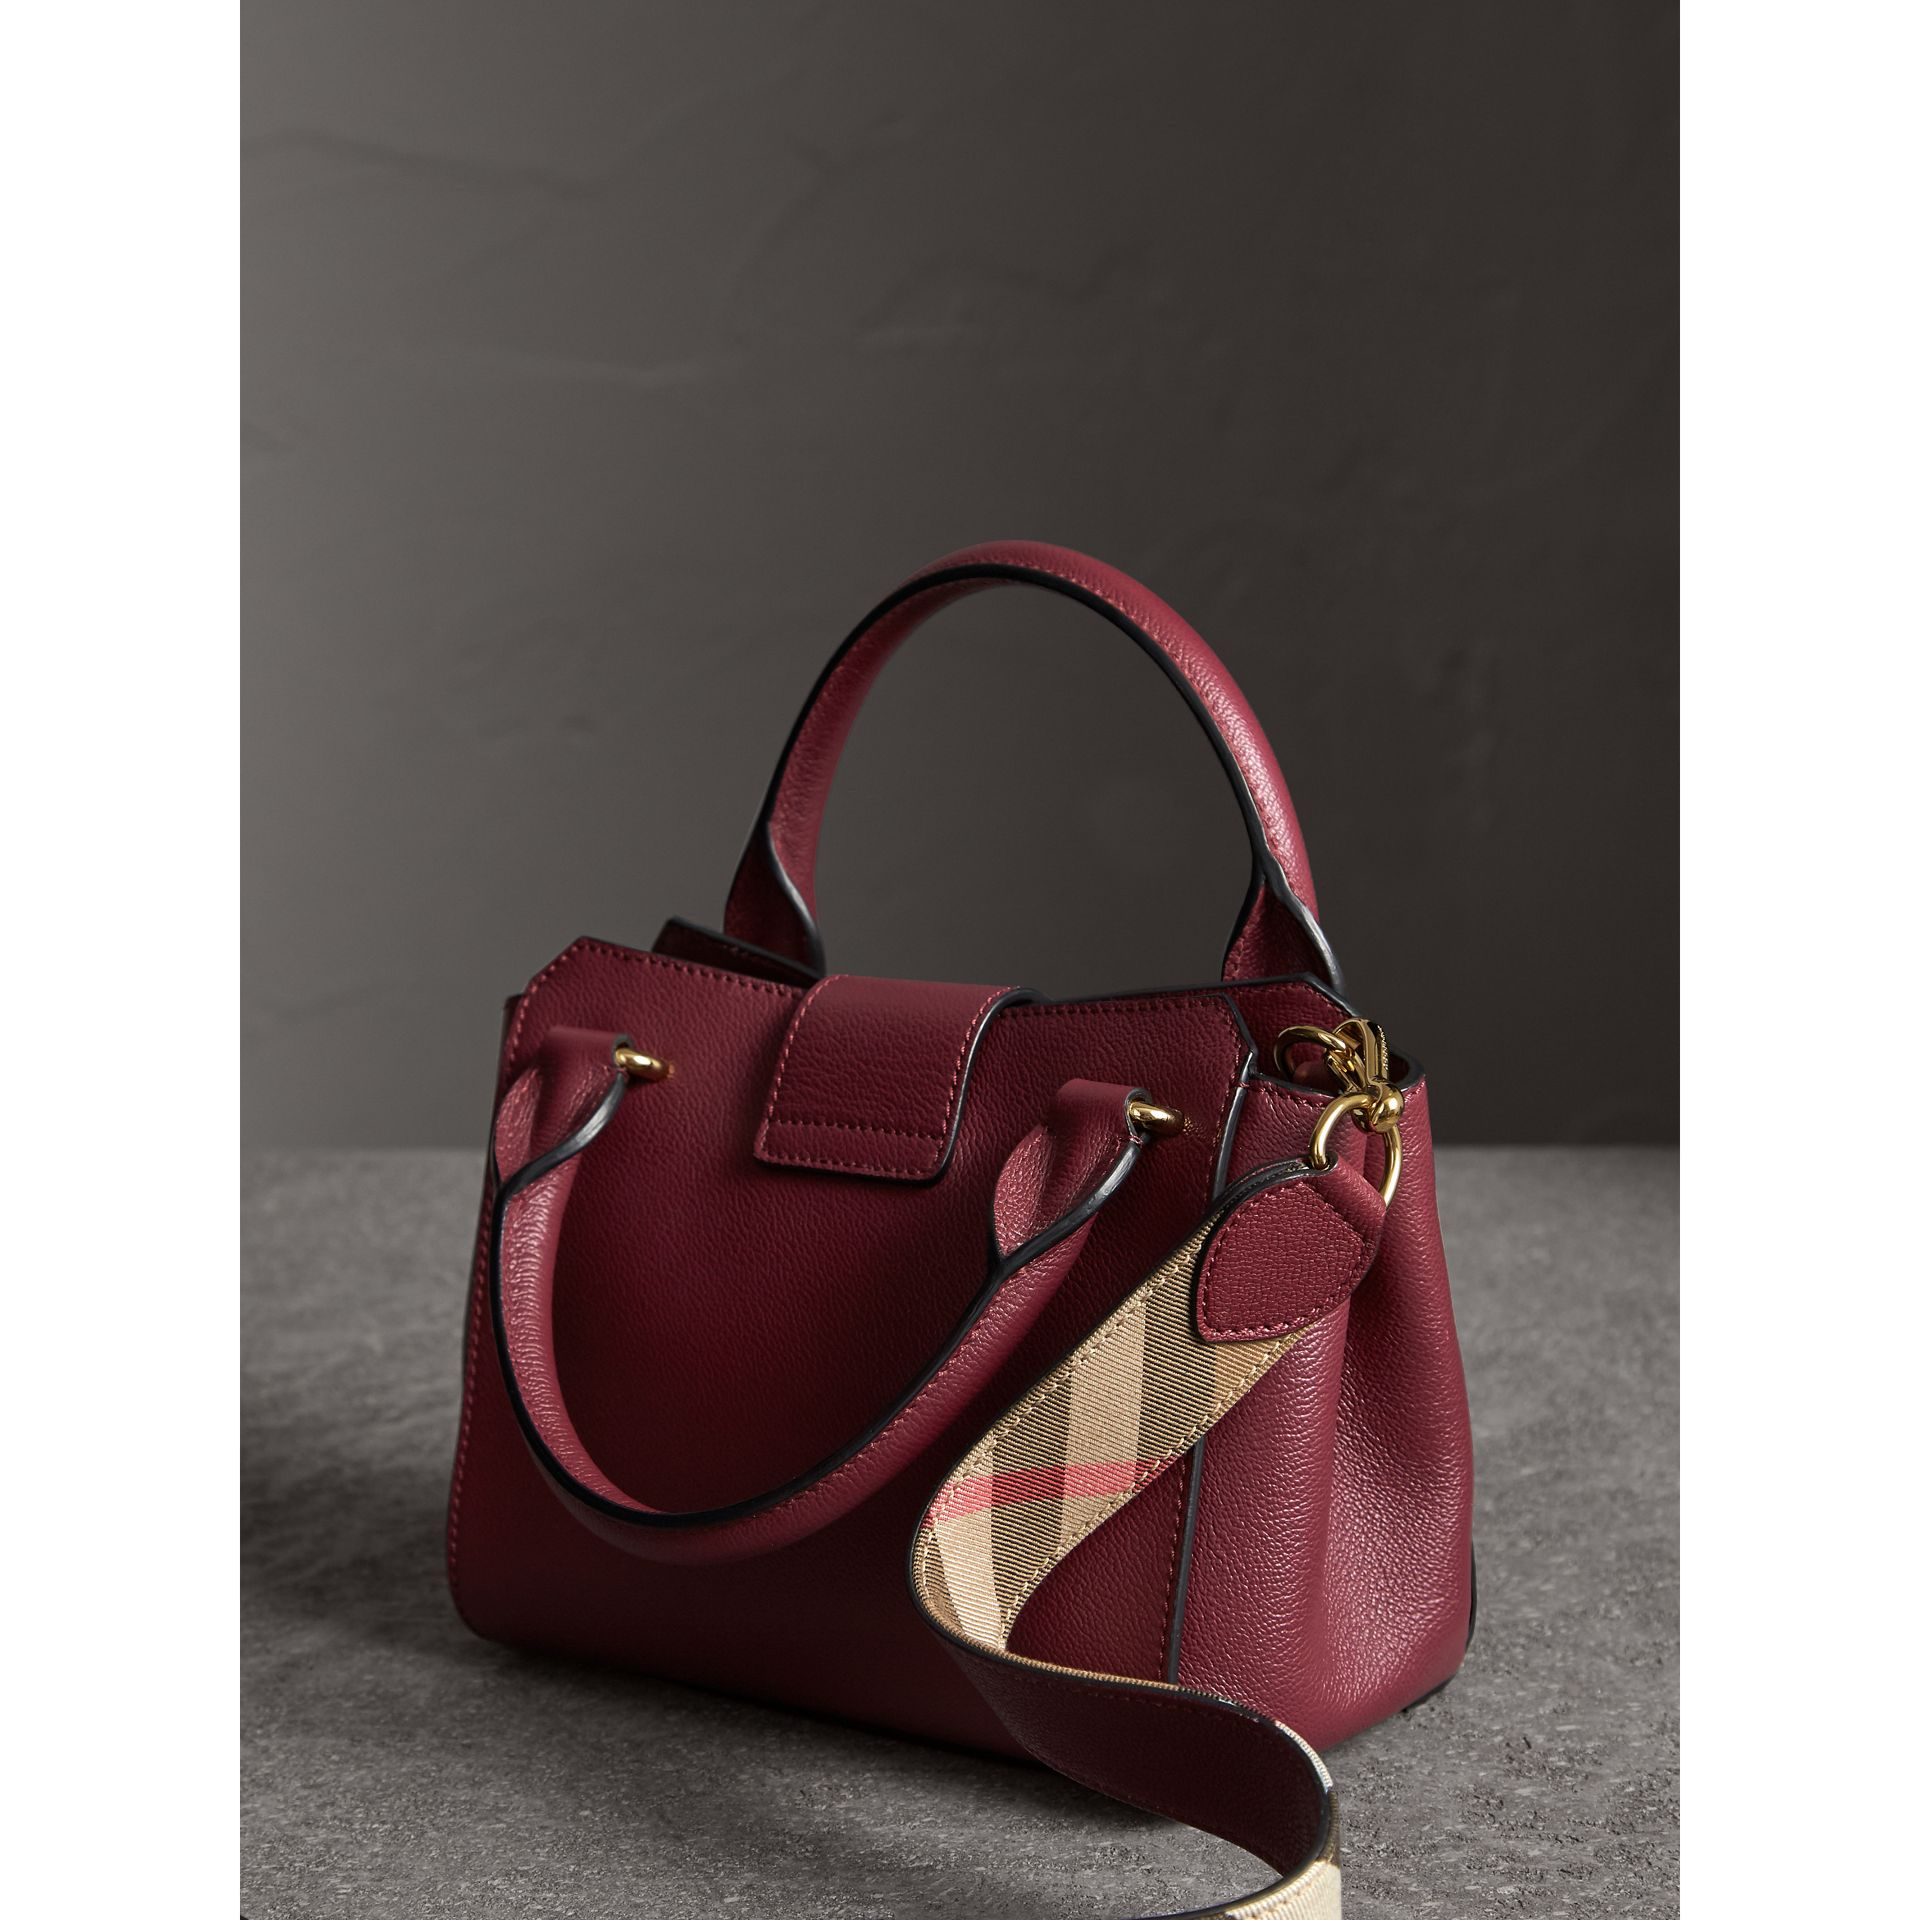 Borsa tote The Buckle piccola in pelle a grana (Prugna Scuro) - Donna | Burberry - immagine della galleria 5